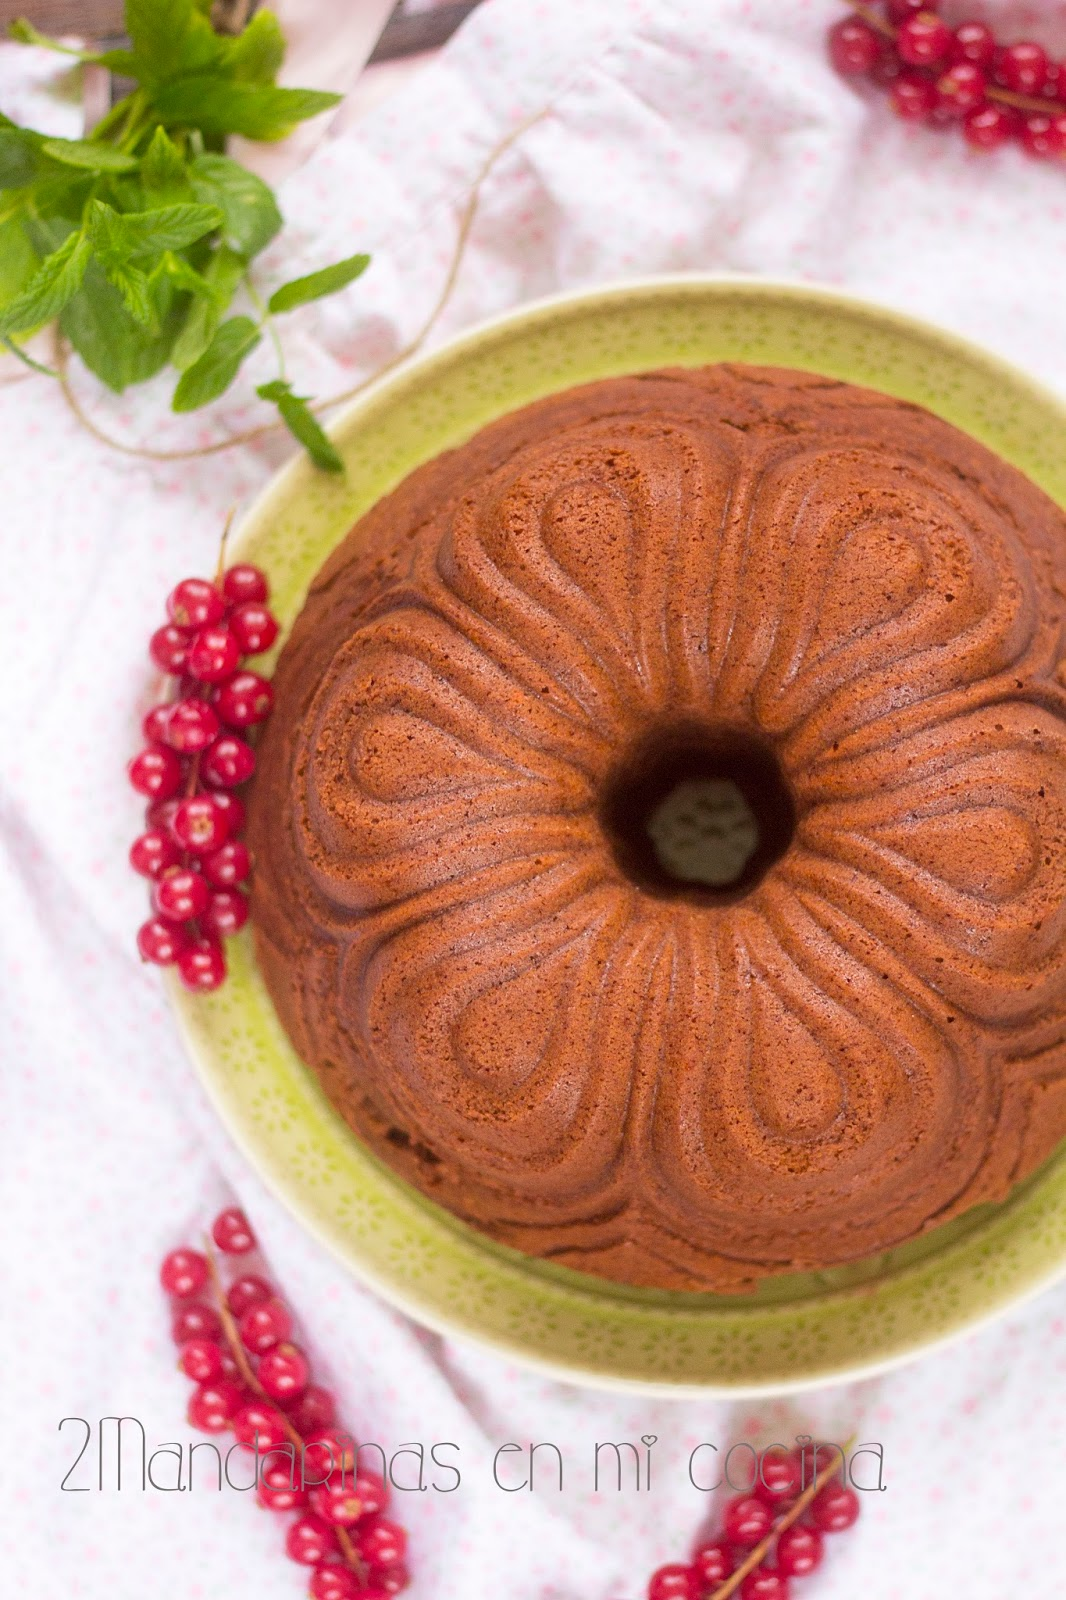 Bundt cake de chocolate y coñac